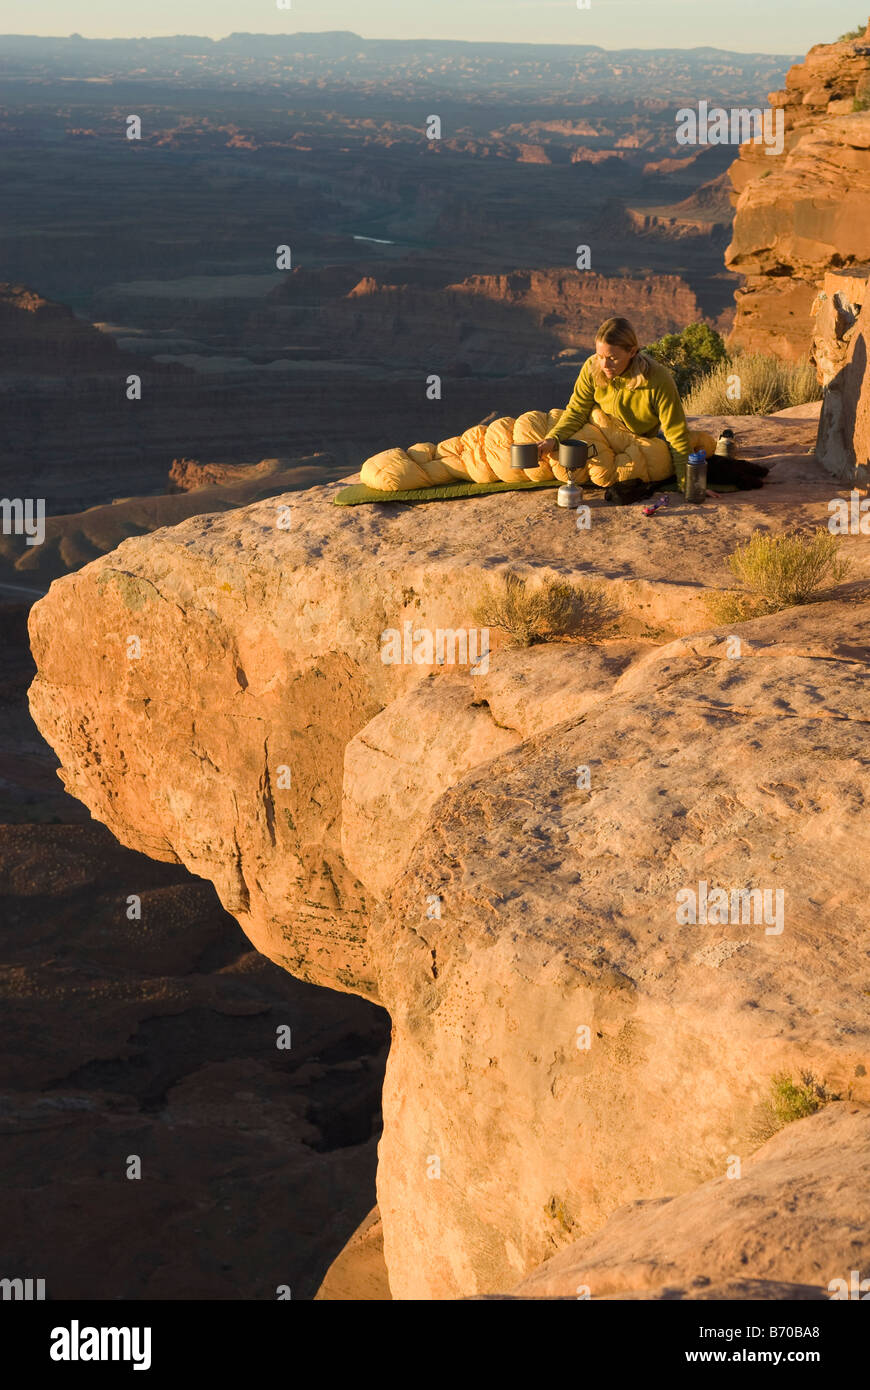 Woman camping on sandstone point, Canyonlands National Park, Utah. - Stock Image